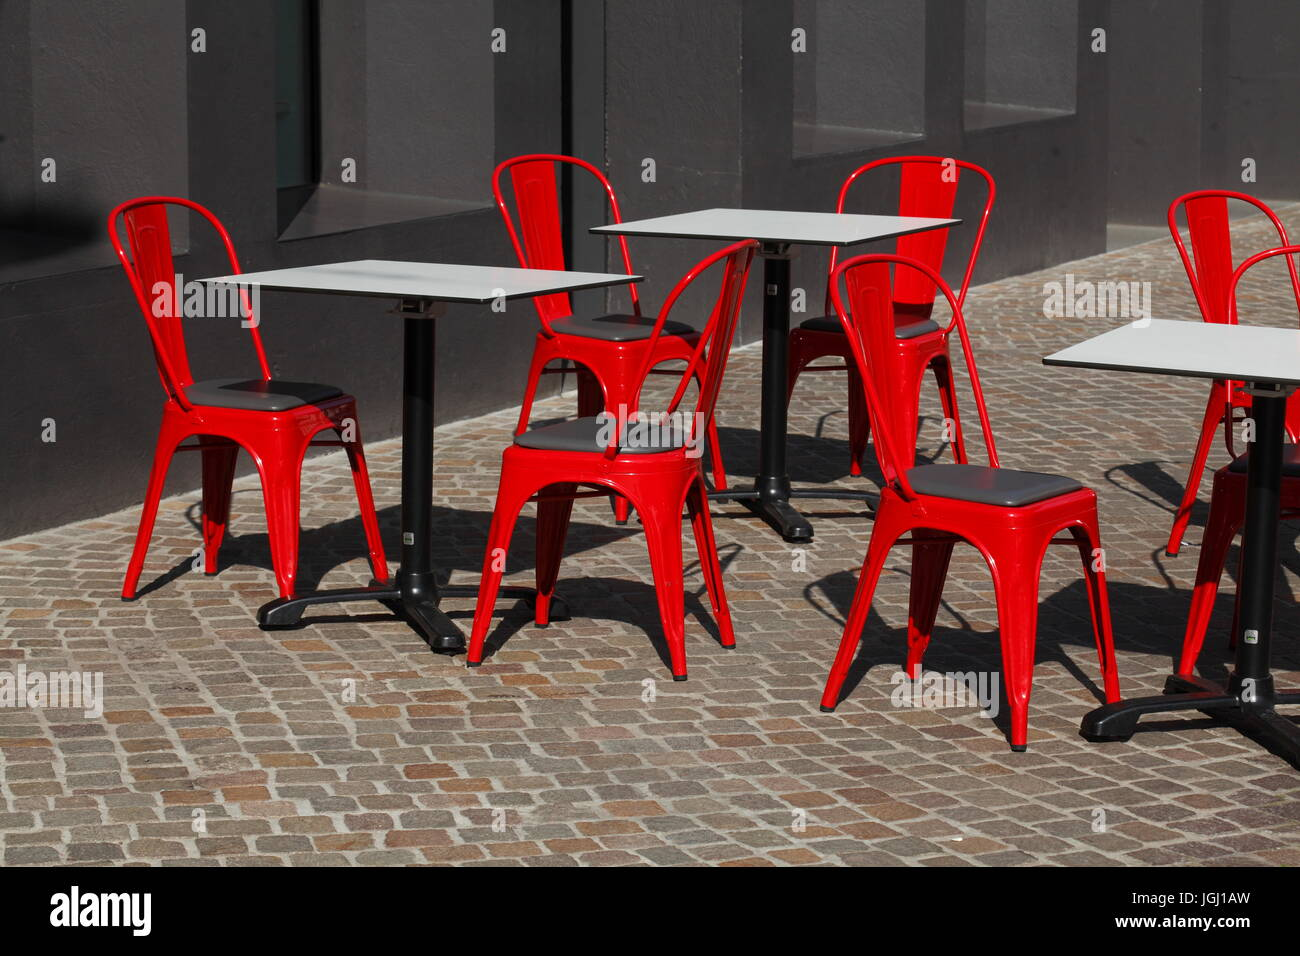 Red Metal Chairs And White Tables